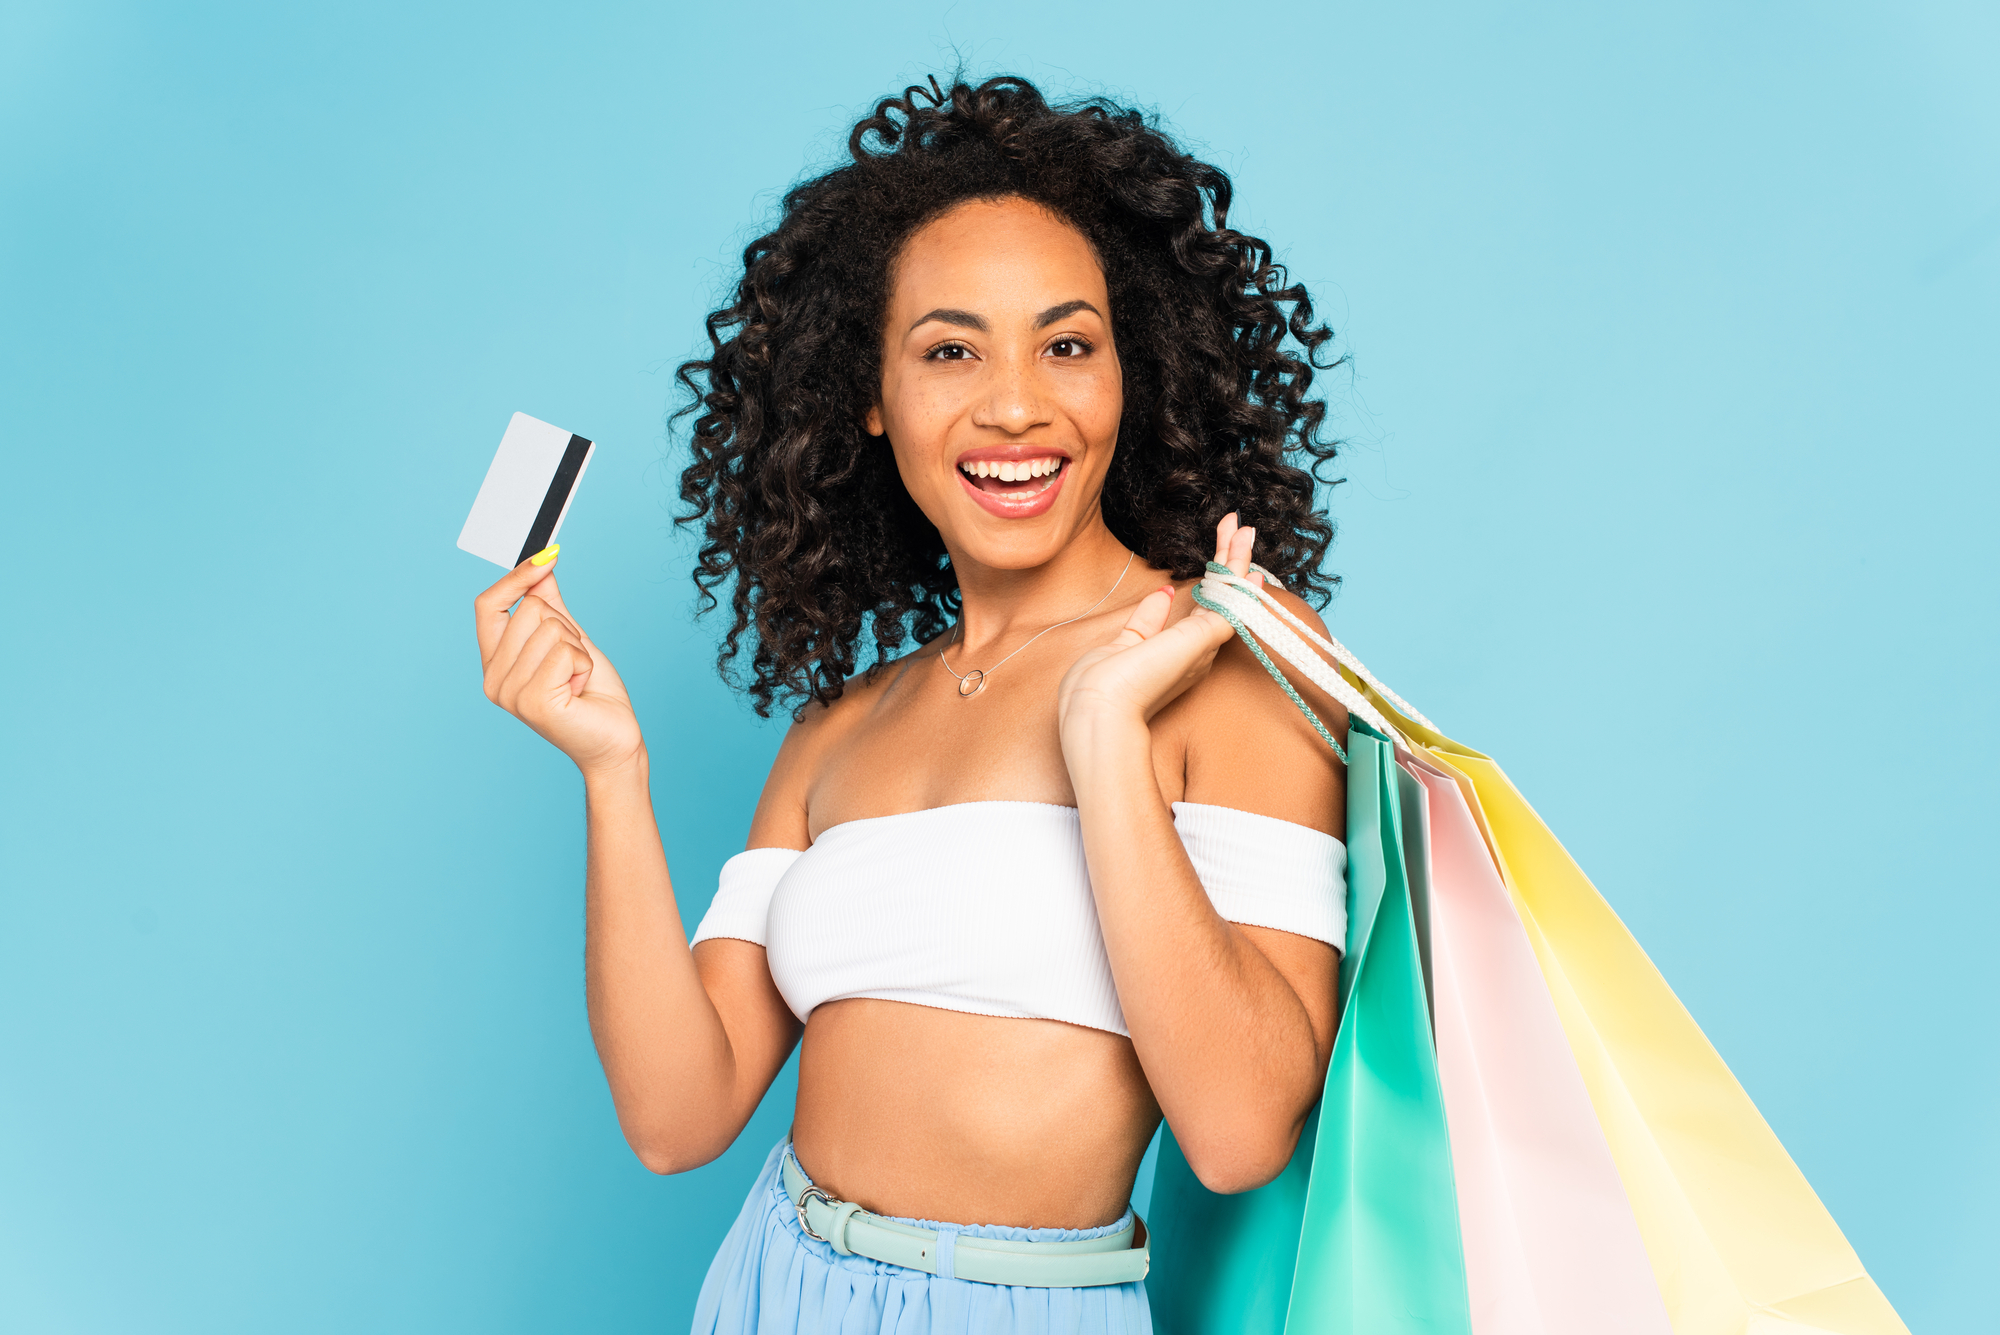 Excited african american woman holding credit card and shopping bags isolated on blue